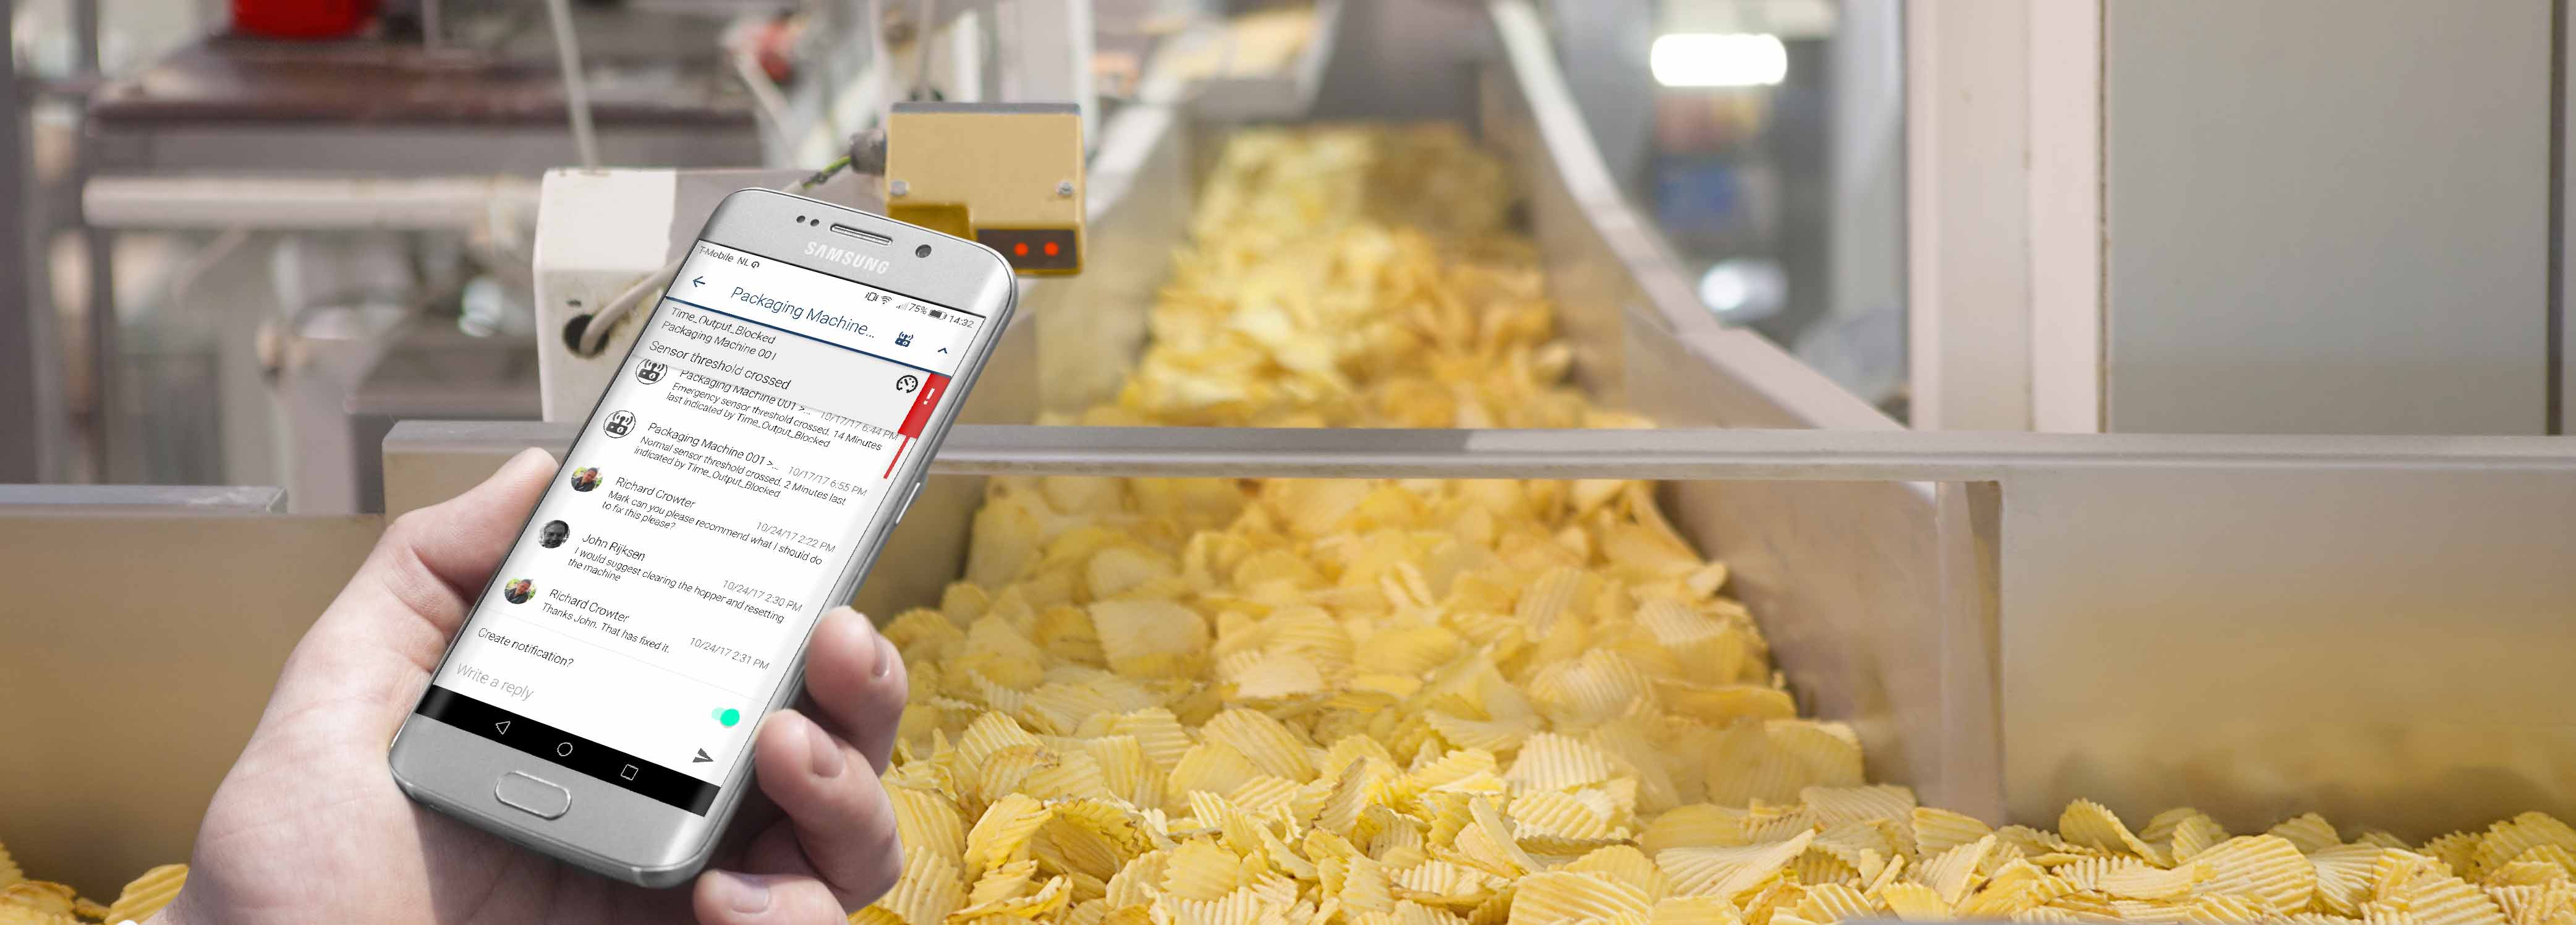 innius used on Android device to communicate with colleagues at a crisp packaging factory